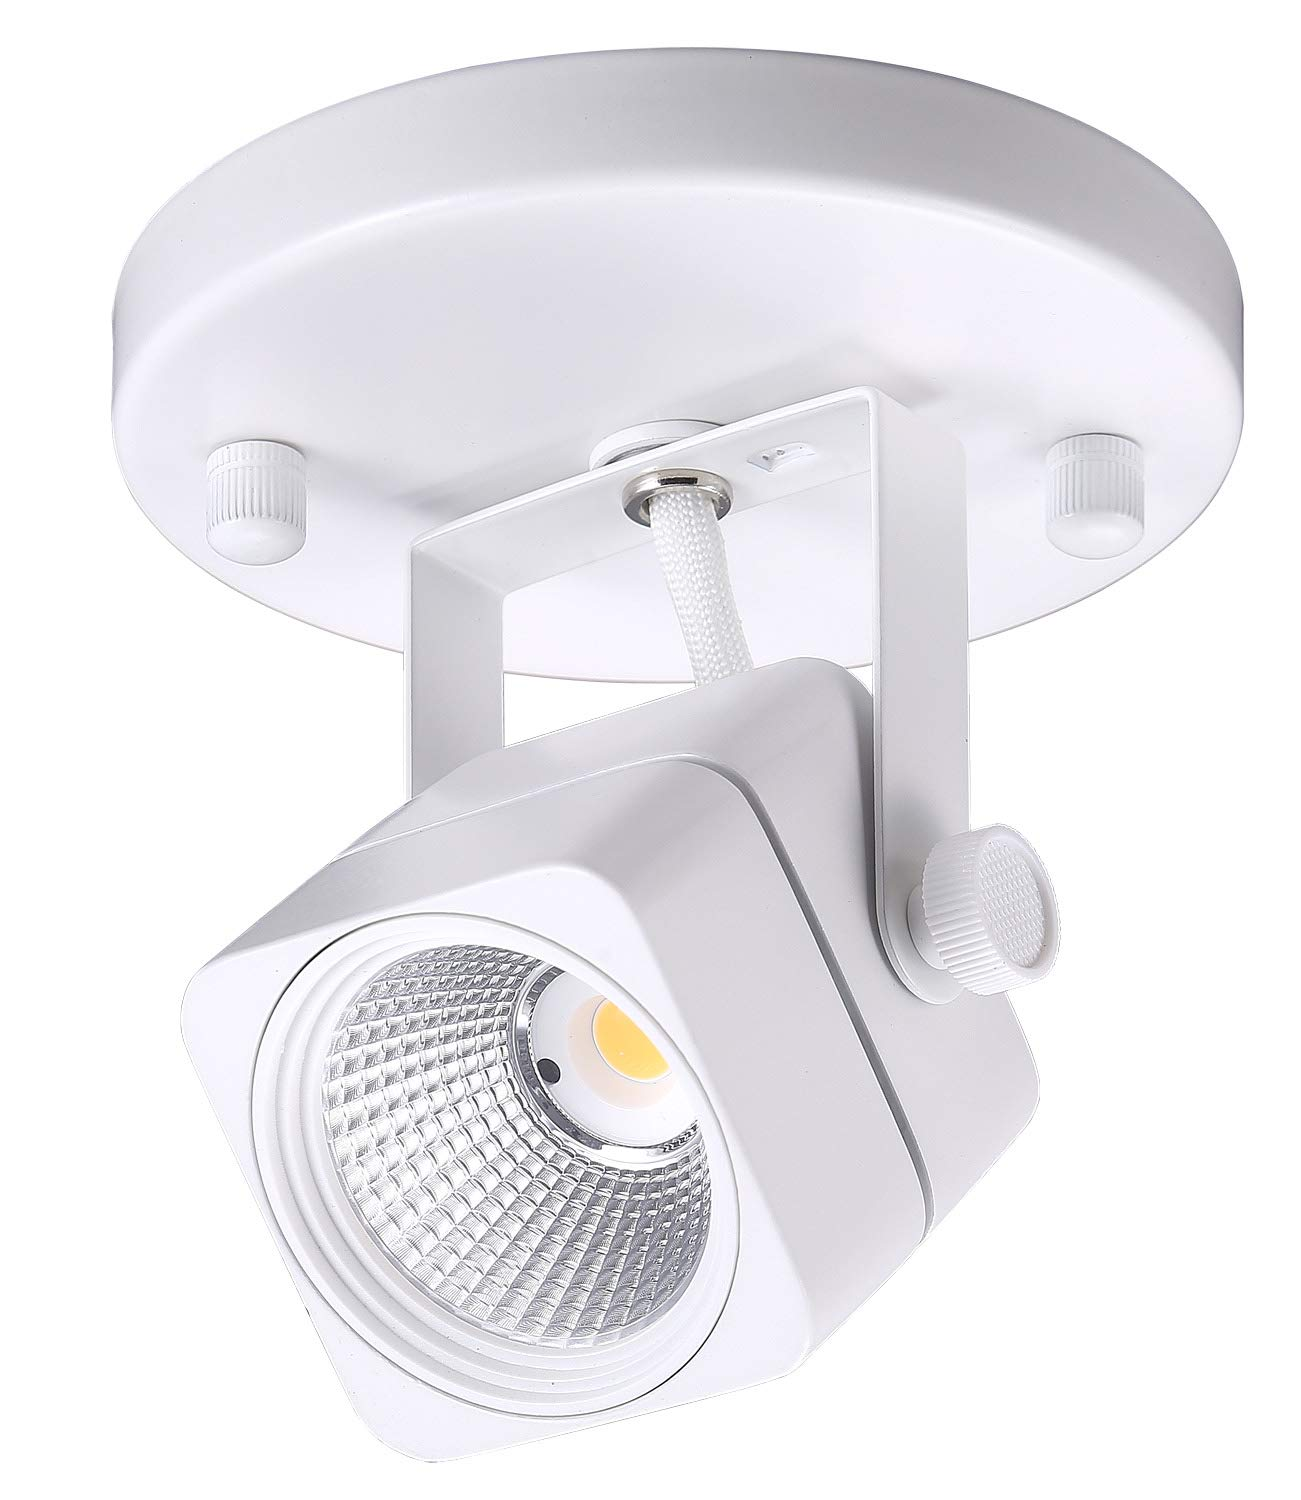 Cloudy Bay LED Ceiling Light Fixture Spot,CRI90+ Warm White Dimmable,White Finish by Cloudy Bay (Image #1)